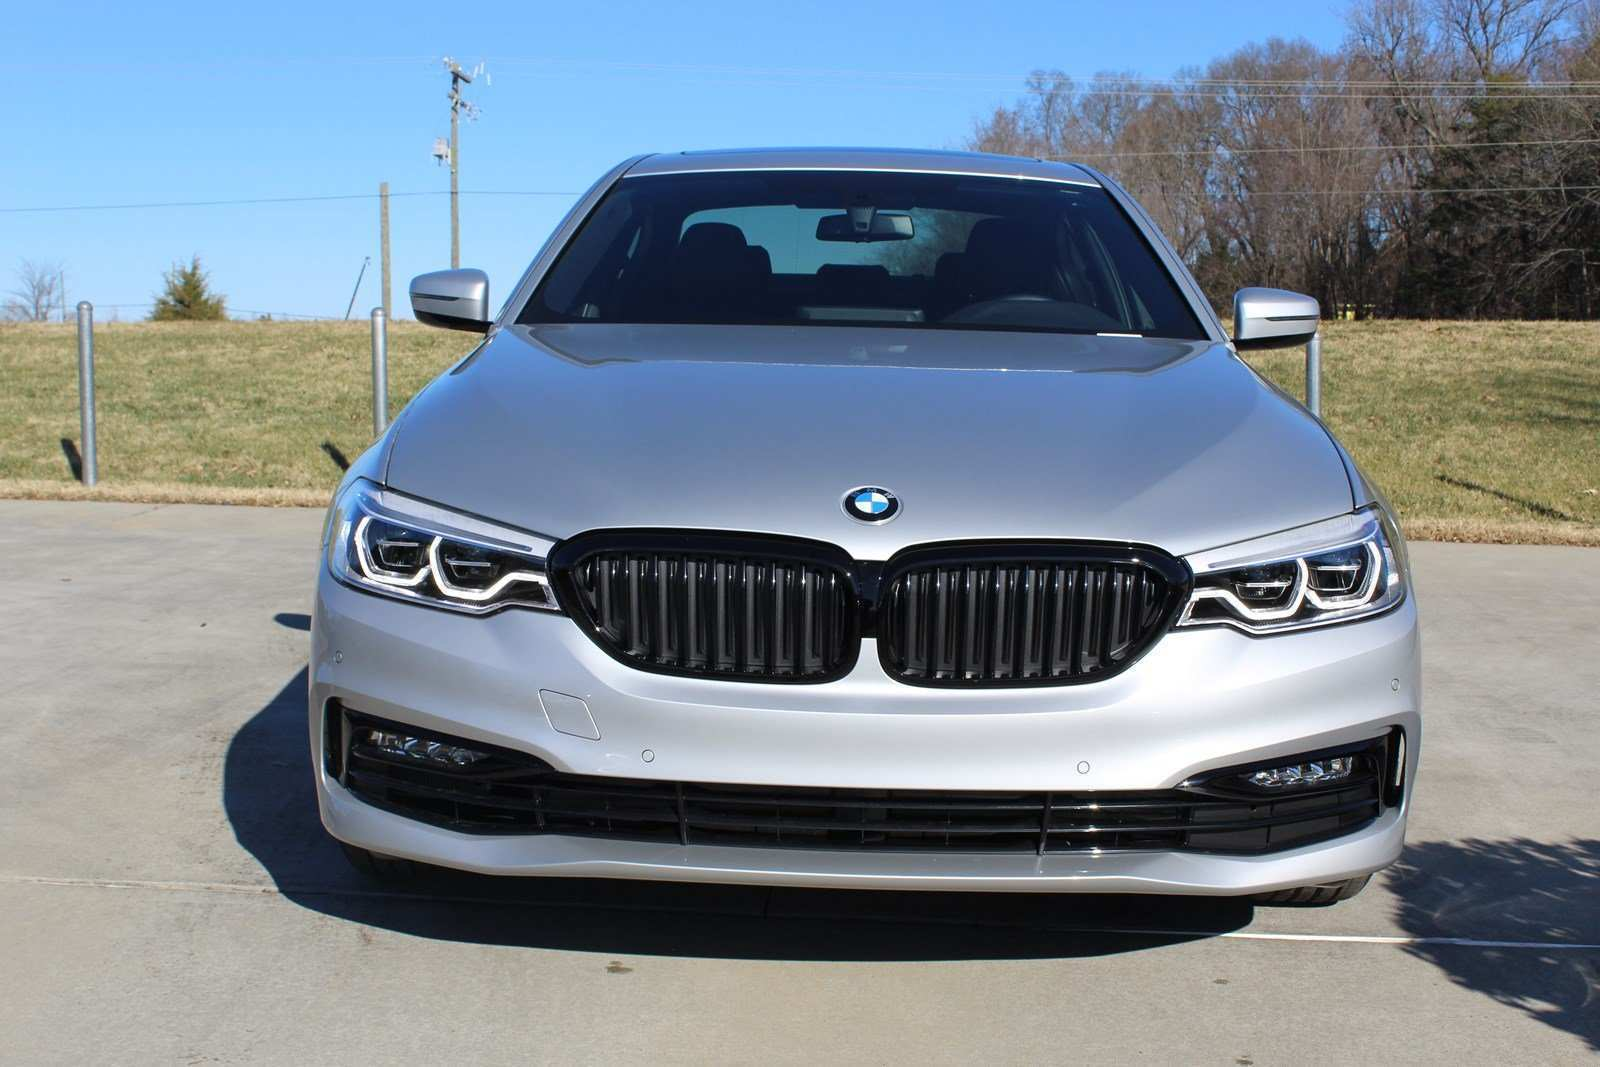 76 All New 2019 BMW 5 Series Release Date And Concept